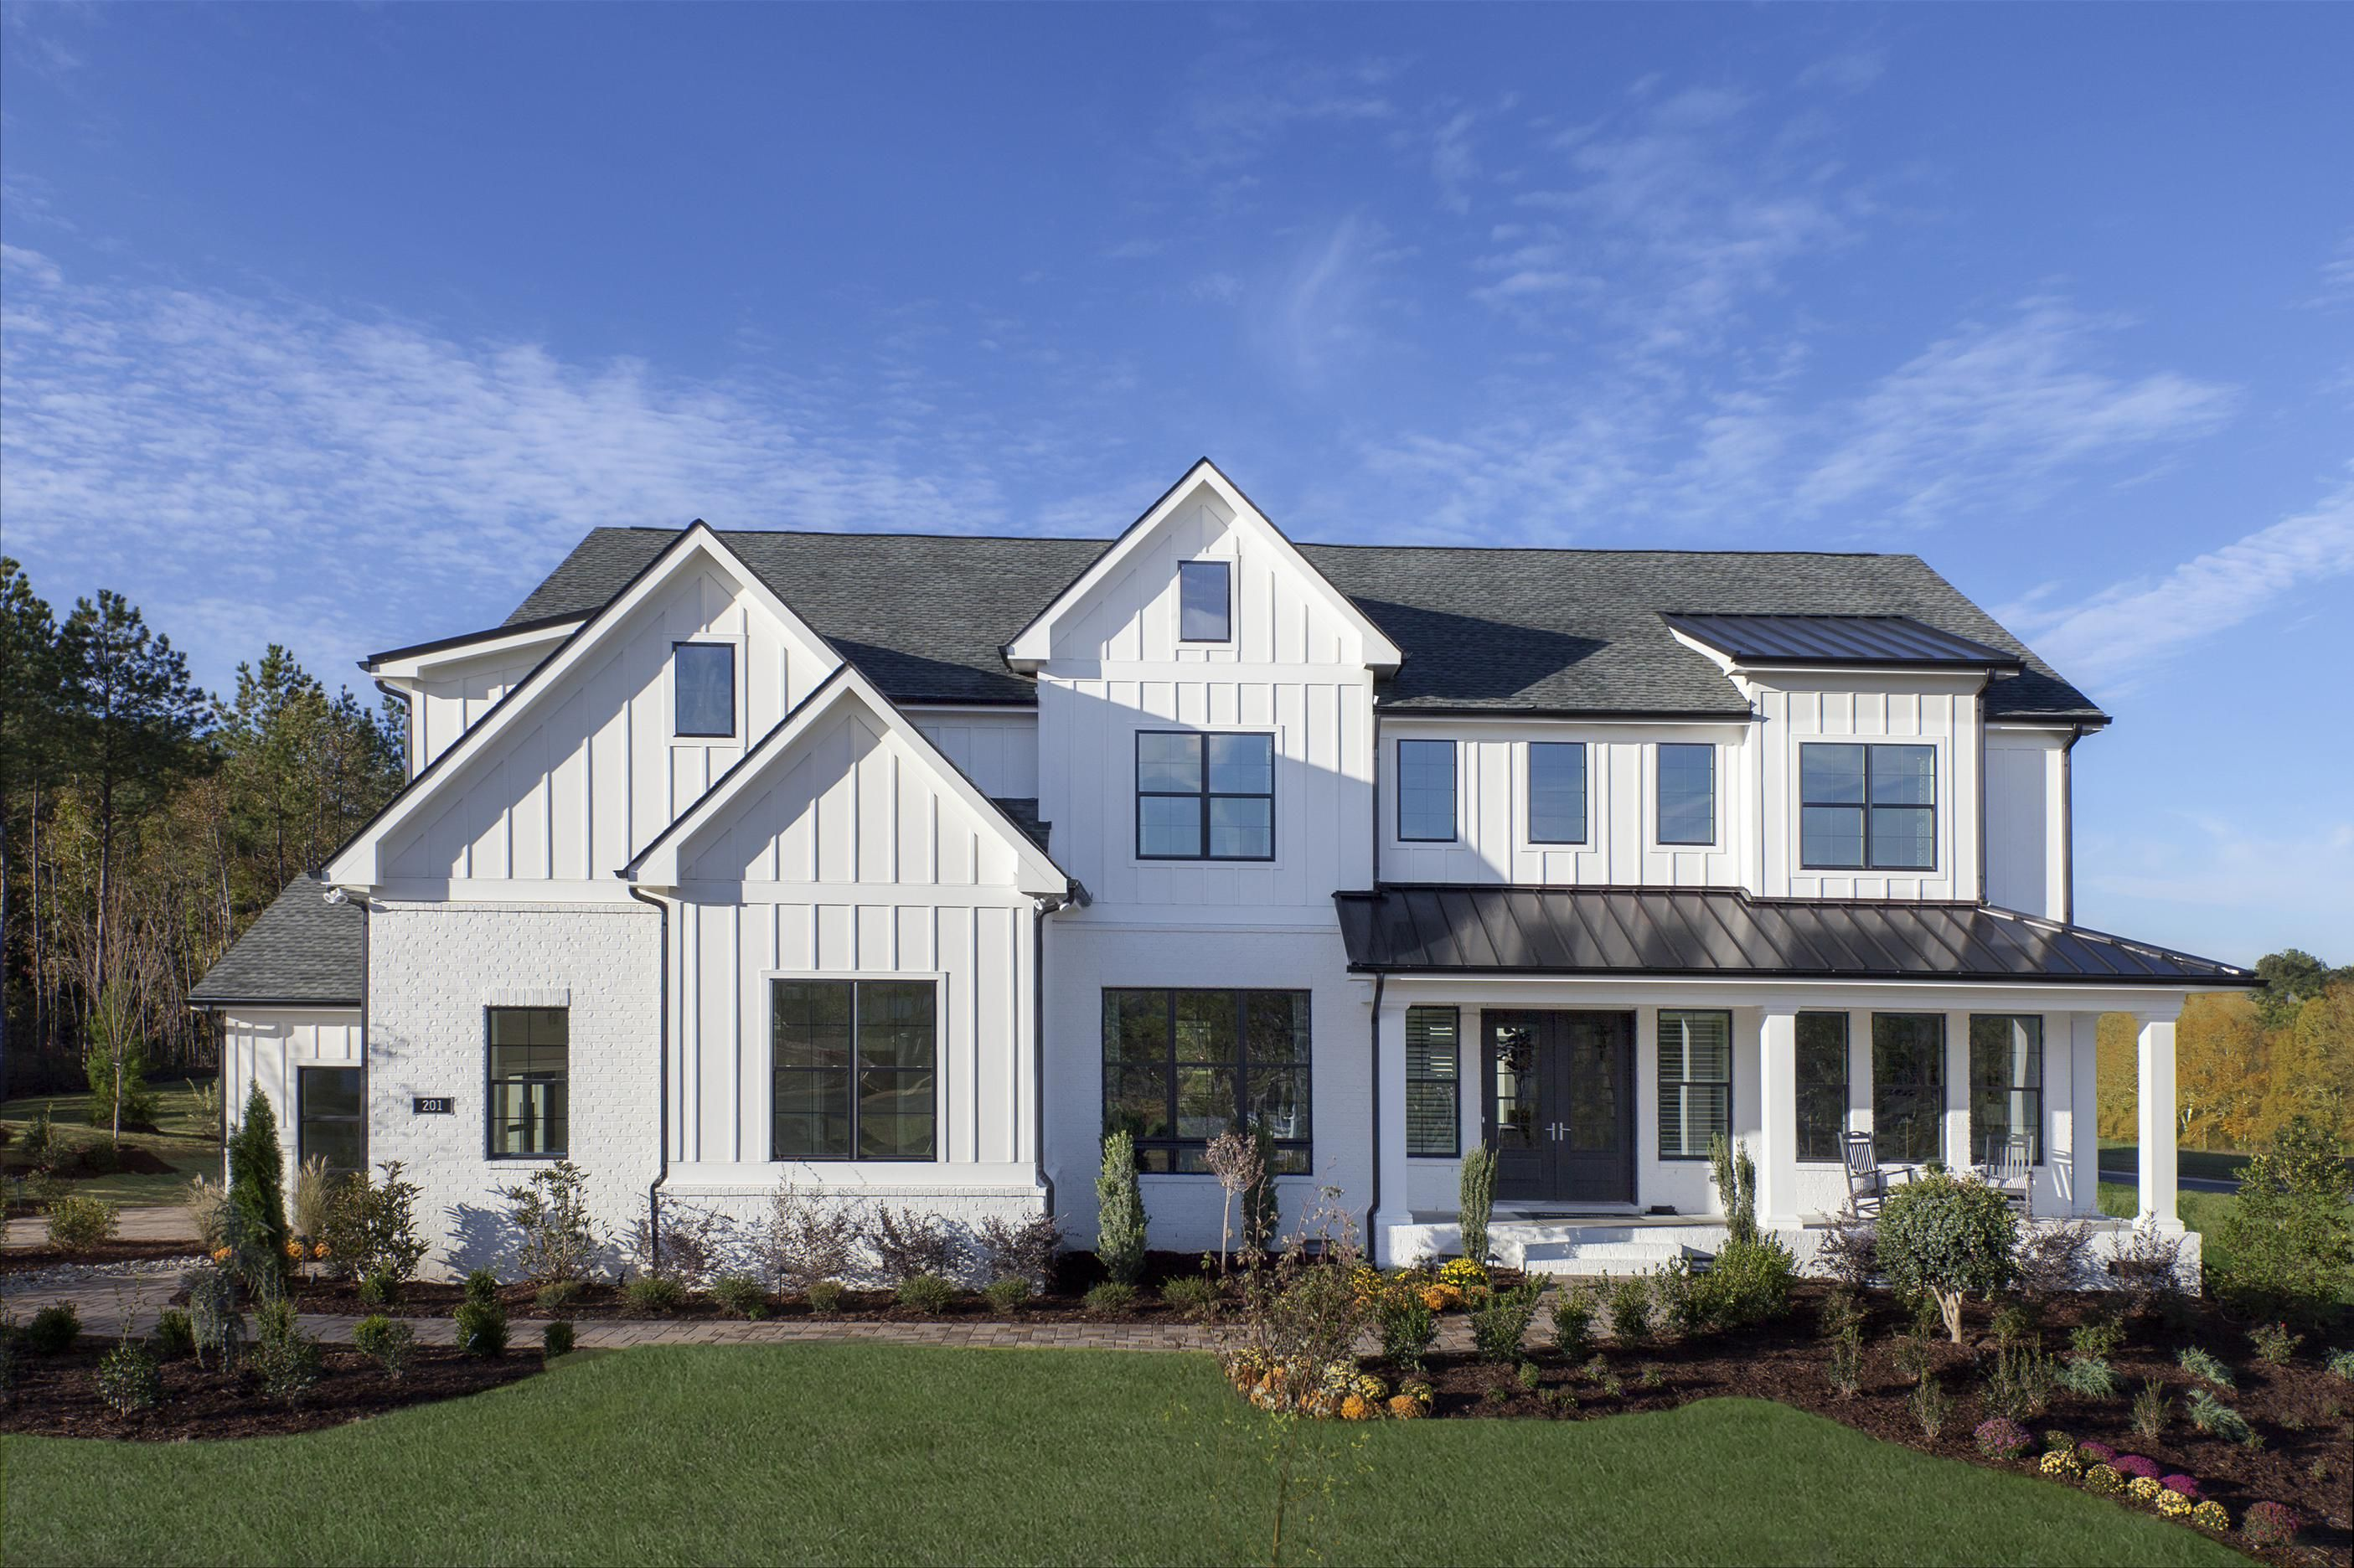 A Modern Farmhouse That Feels As Grand As It Does Inviting The Hollister Redefines Rustic In 2020 Modern Farmhouse Exterior Farmhouse Exterior Rustic Houses Exterior